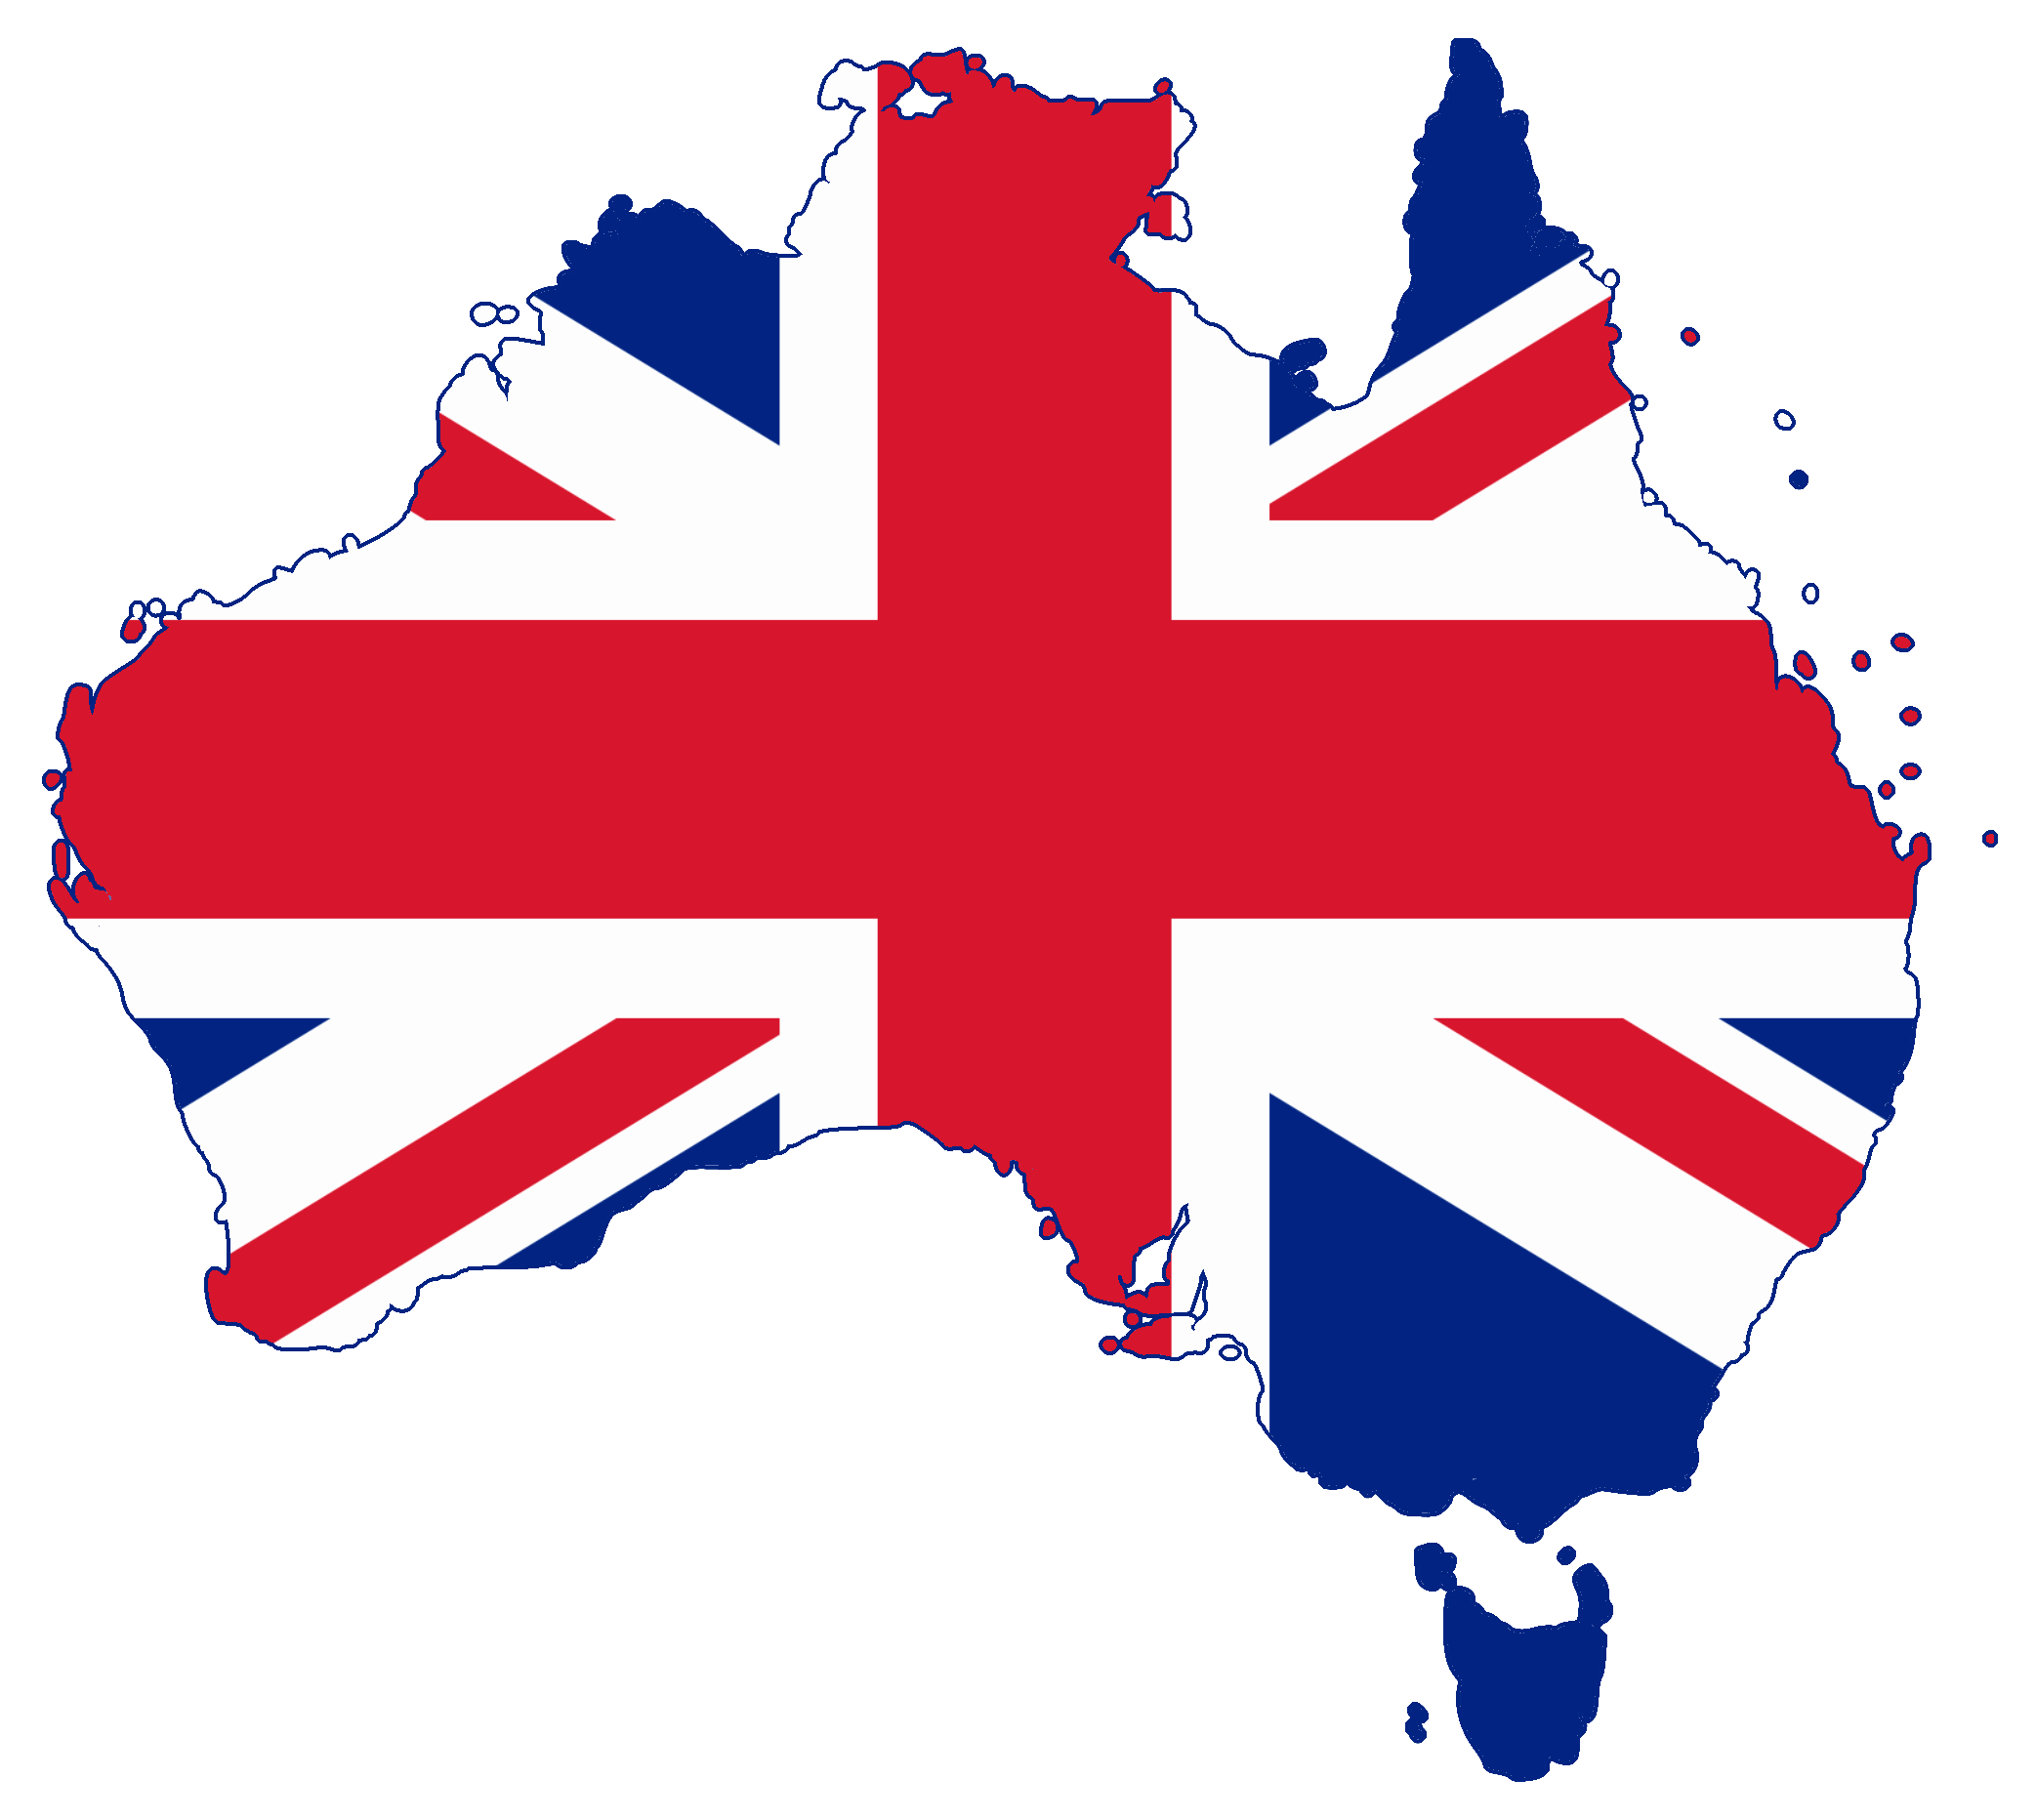 File:Flag map of Australia (United Kingdom).png - Australia PNG